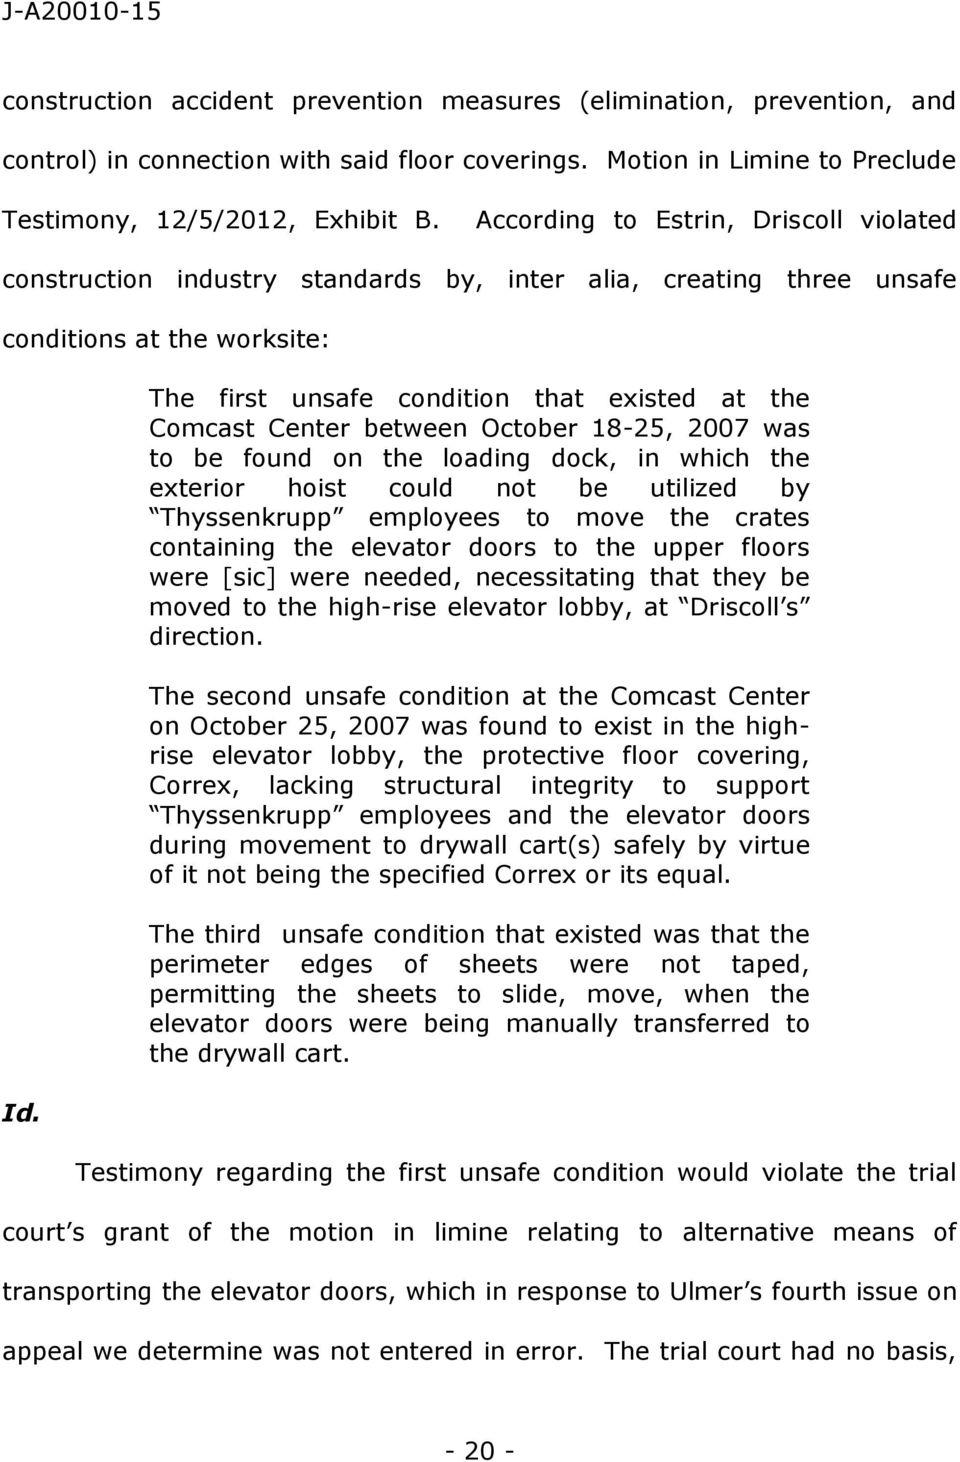 The first unsafe condition that existed at the Comcast Center between October 18-25, 2007 was to be found on the loading dock, in which the exterior hoist could not be utilized by Thyssenkrupp